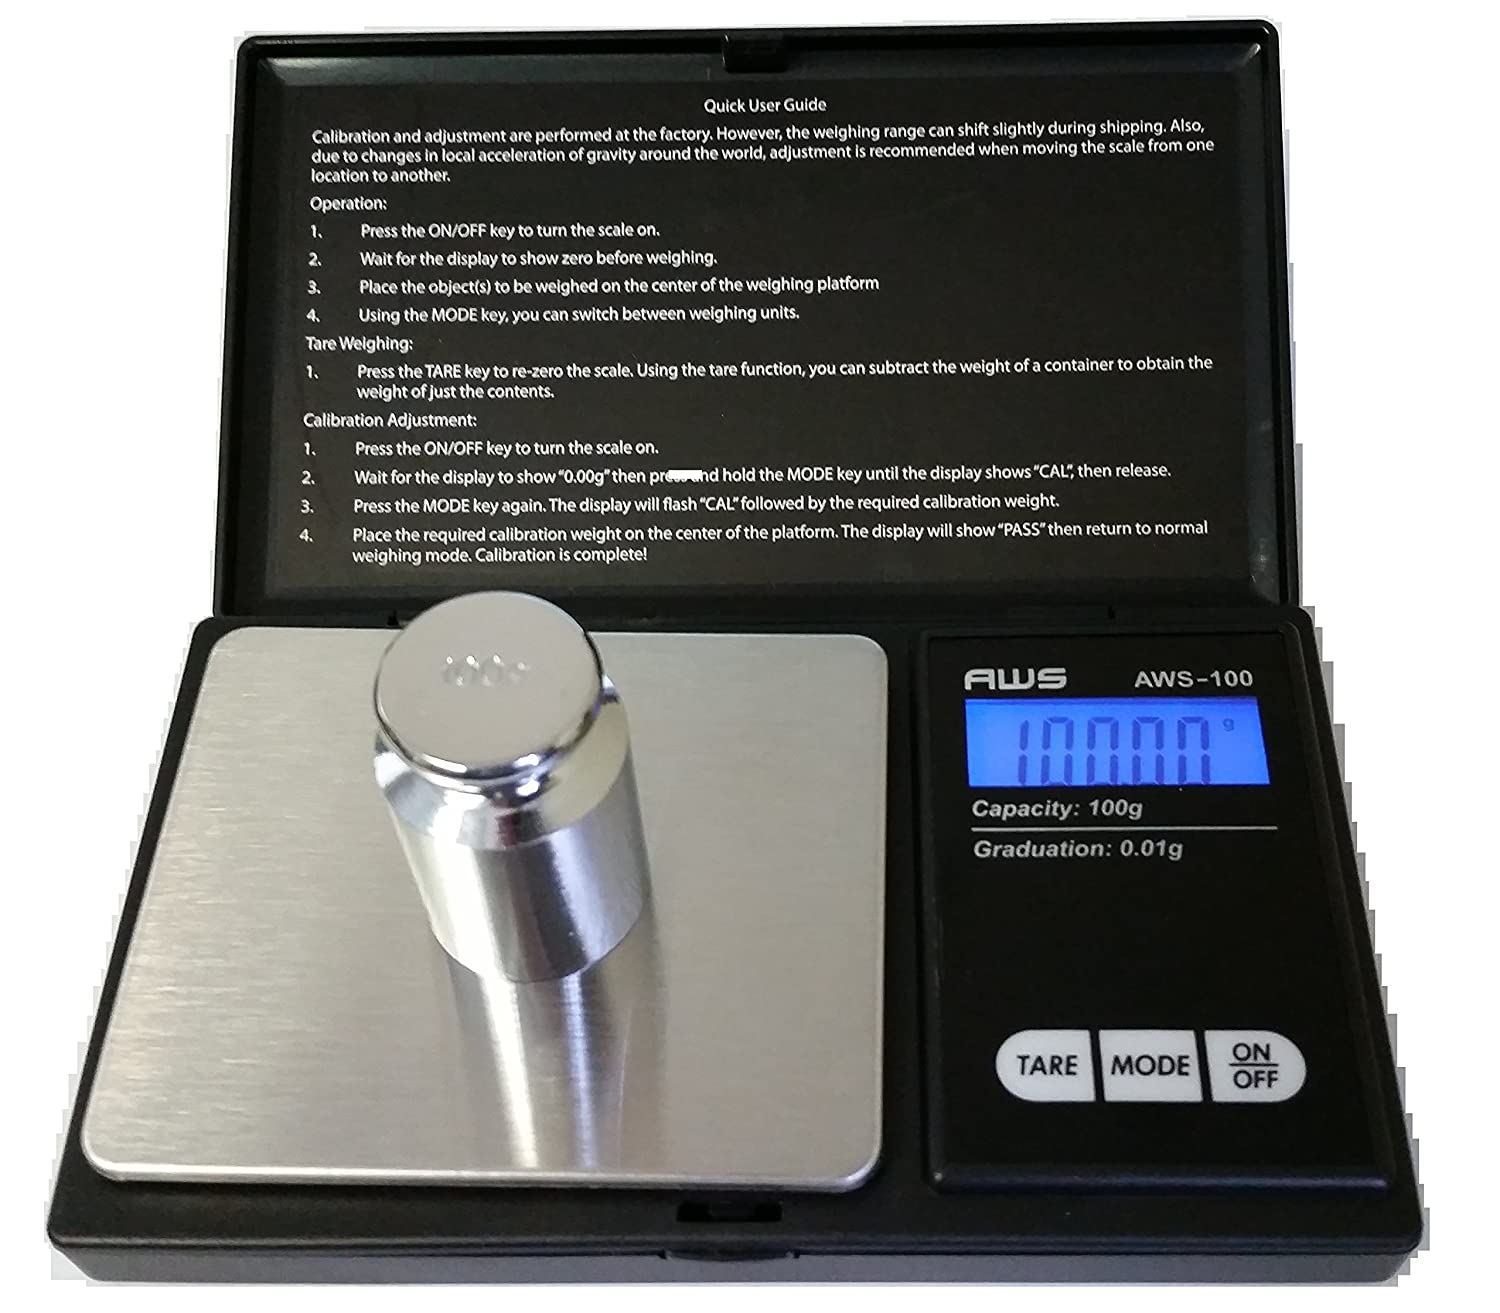 American Weigh Scale AWS-100 Digital Pocket Scale, 100g X 0.01g Resolution American Weigh Scales AWS-100-BLK